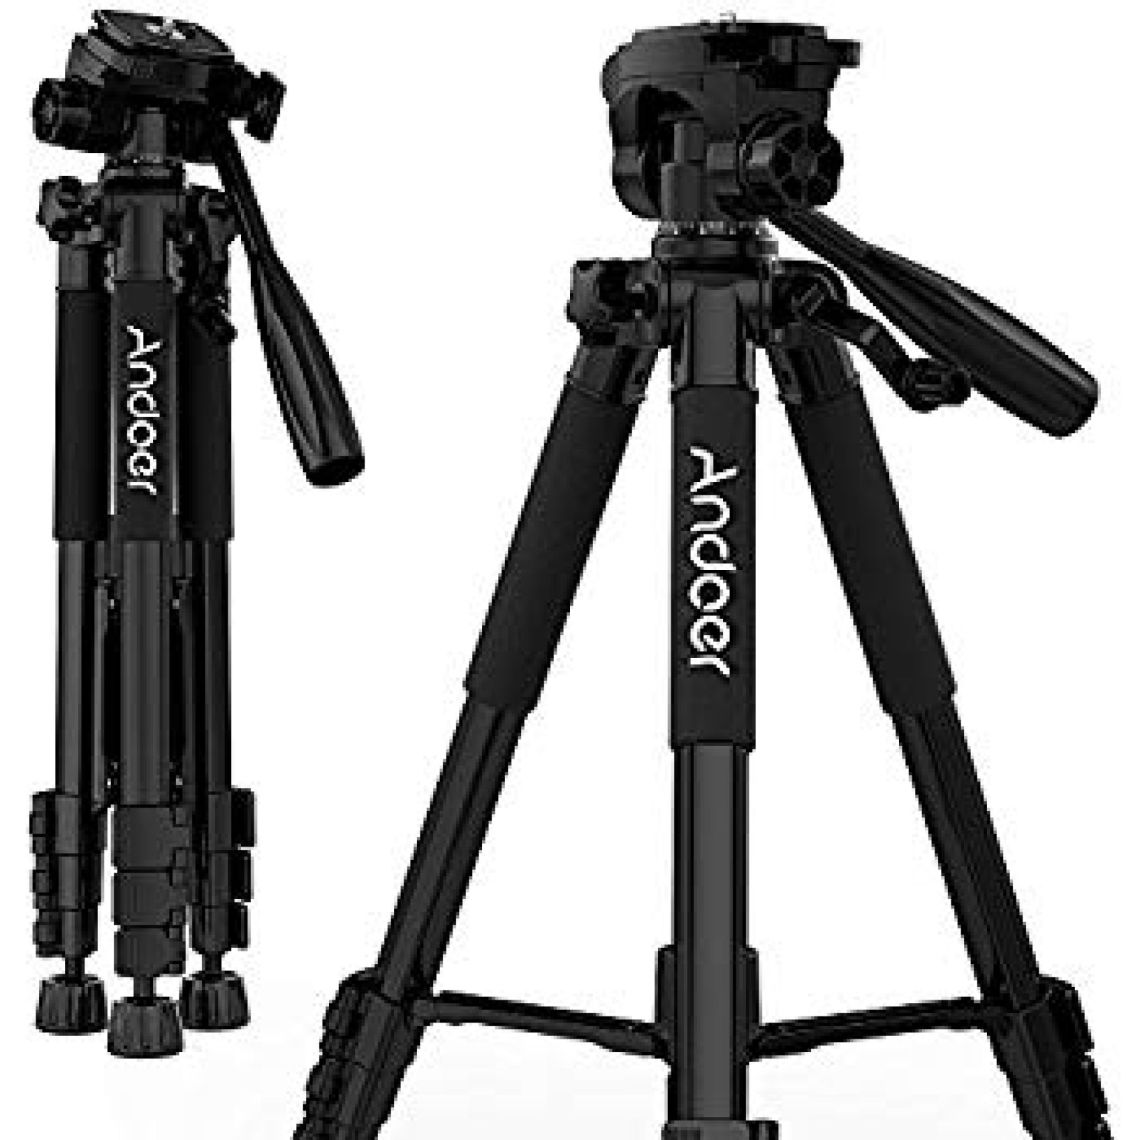 Amazon.com: Andoer Camera Tripod, Compact and Lightweight with Universal Tripod Smartphone Mount for Apple, iphone Samsung and Other Brands Smartphones+carrying bag: Camera & Photo